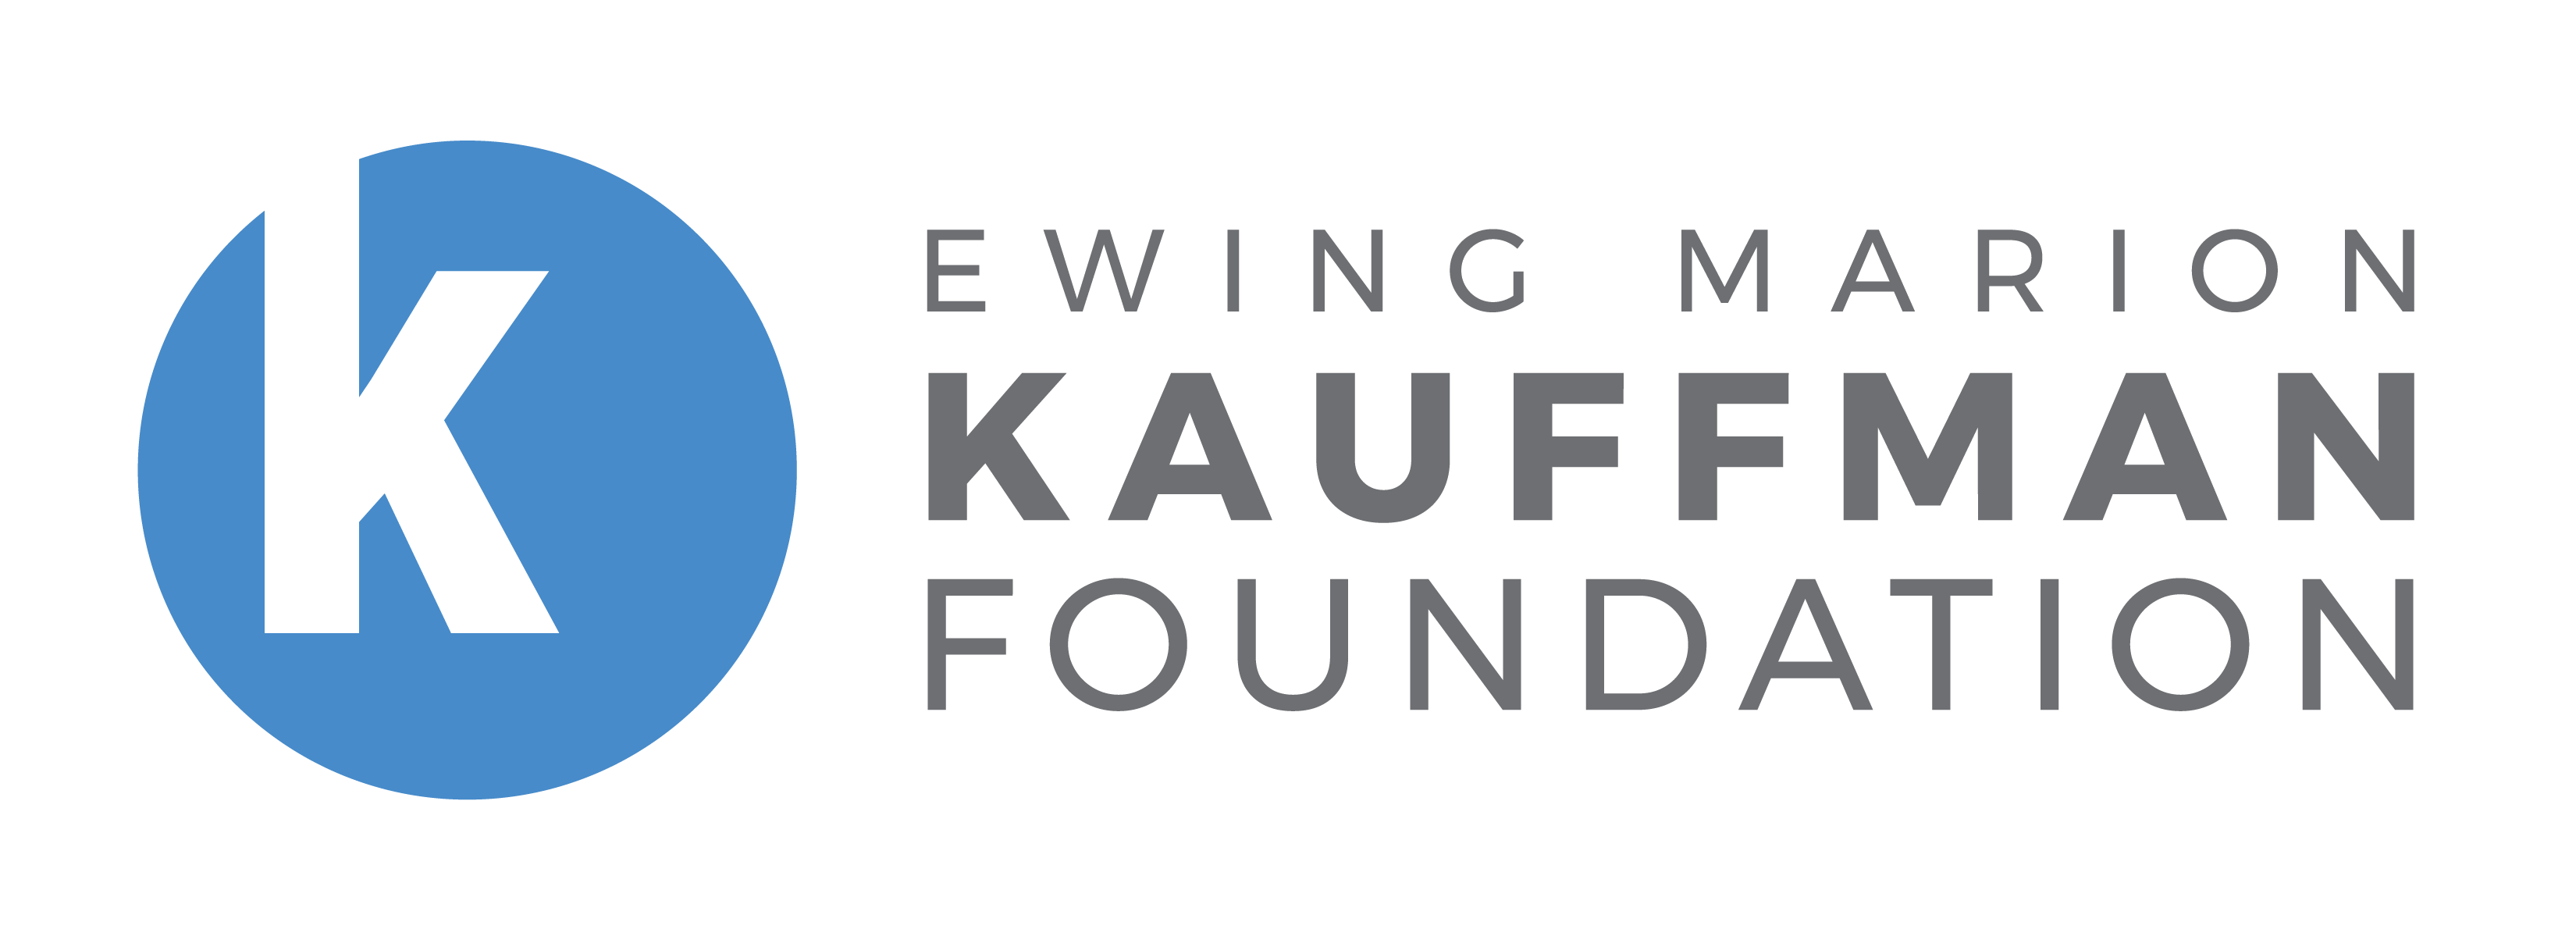 light blue circle with white k in upper left thirdEwing Marion Kauffman Foundation stacked on right side of logo